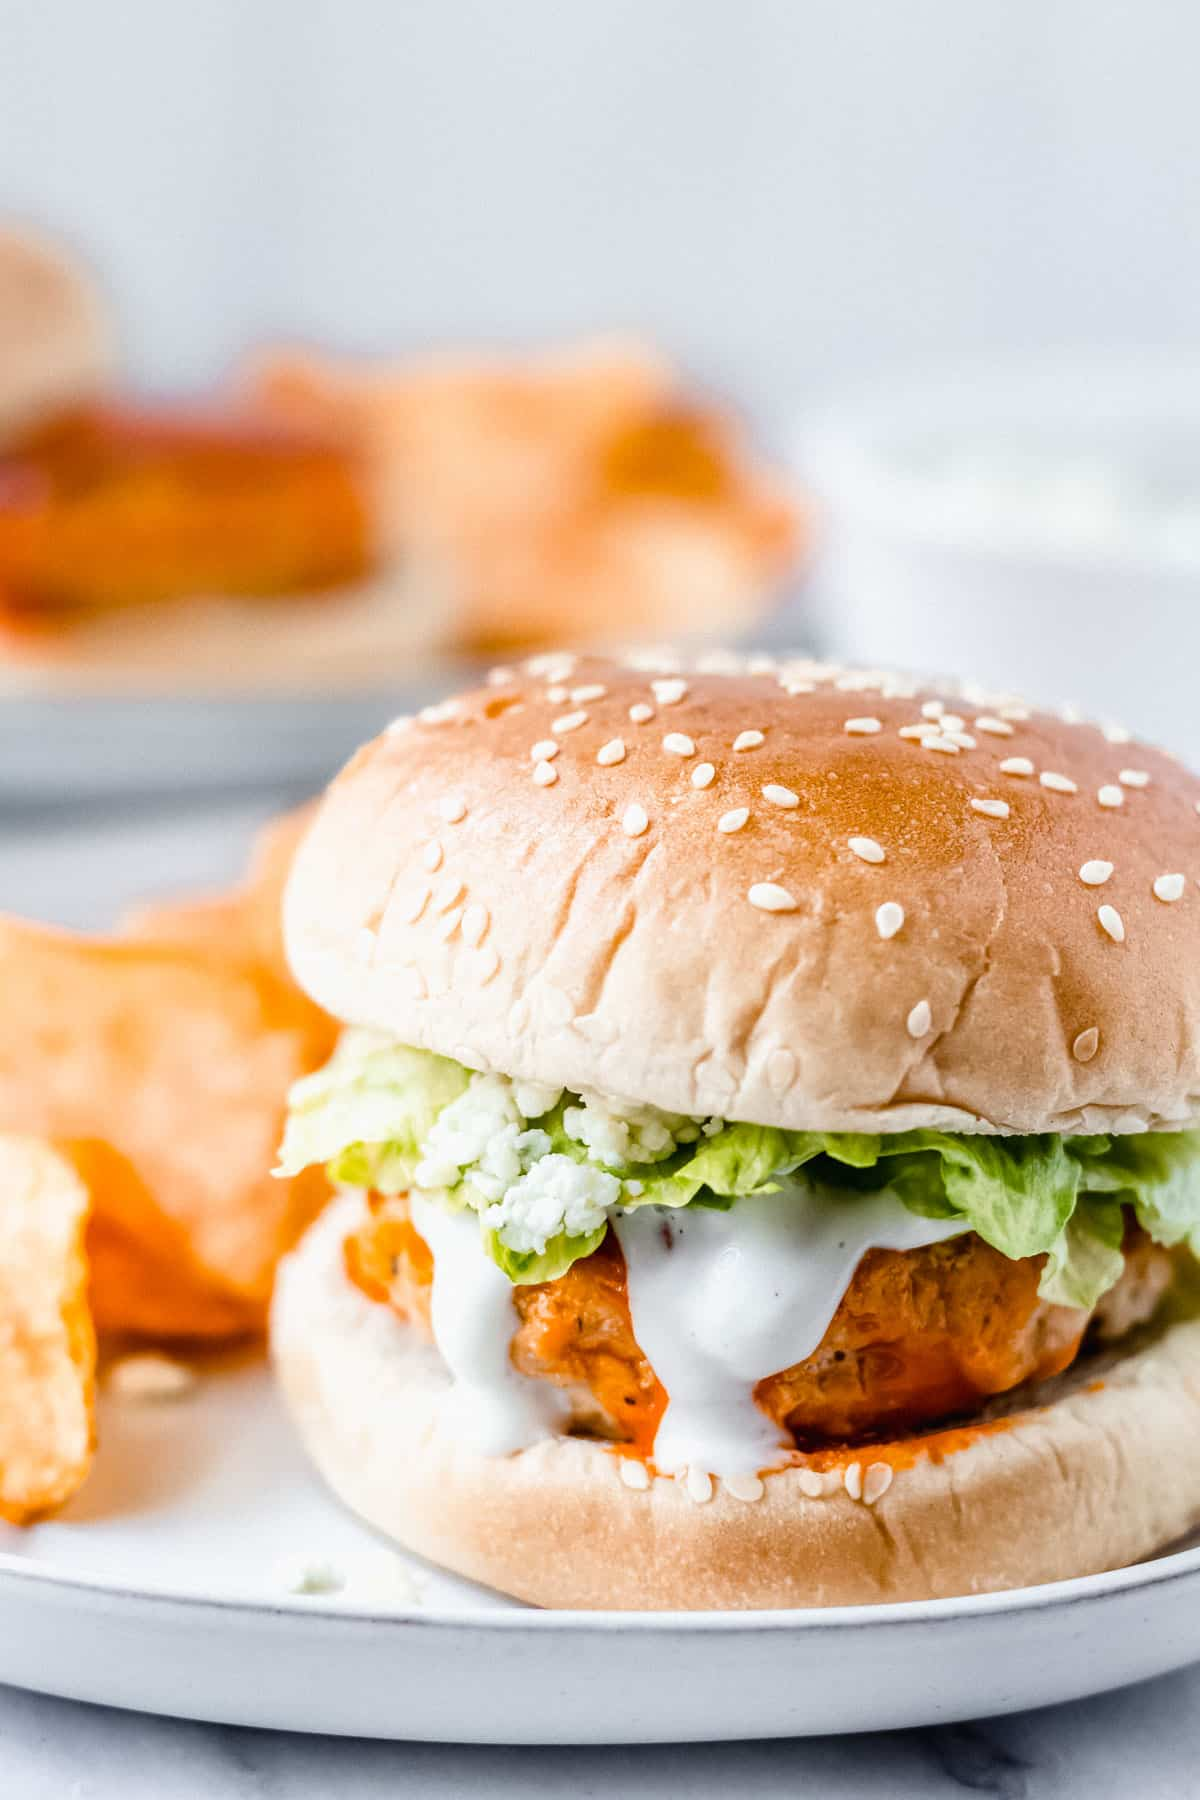 A buffalo chicken burger on a plate with potato chips and a second plate and small white bowl blurred in the background